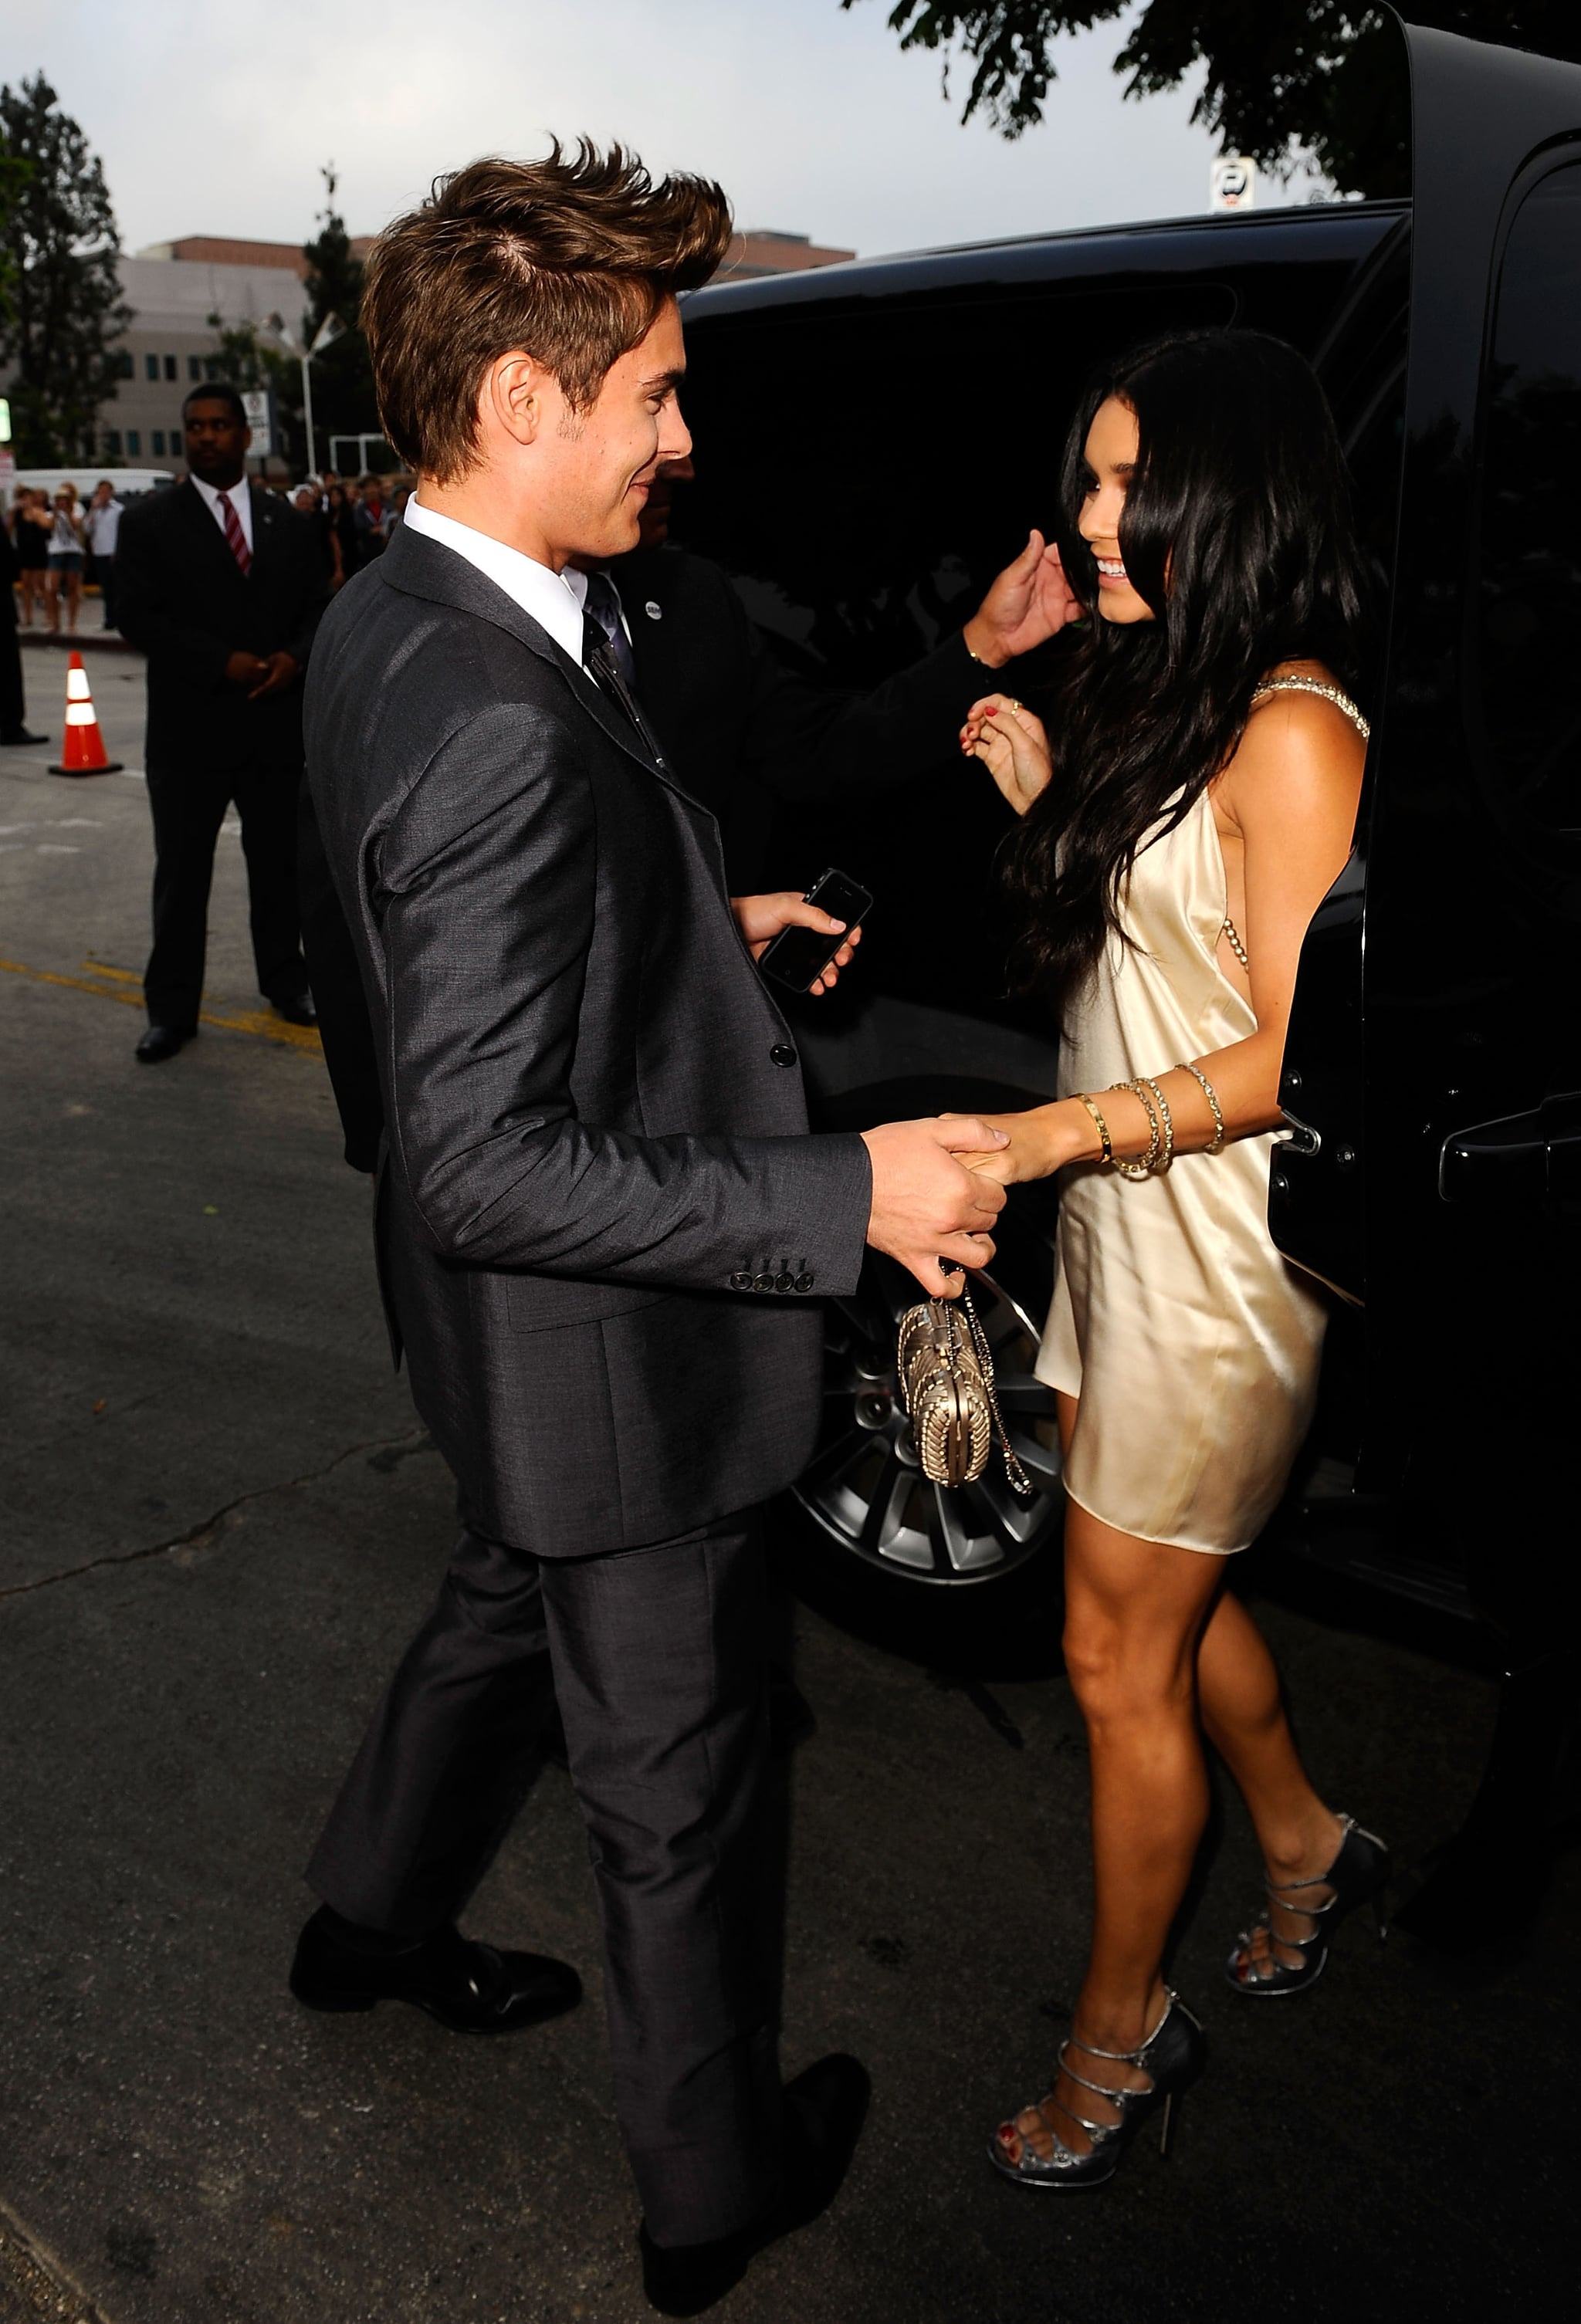 Pictures Of Zac Efron And Vanessa Hudgens At La Premiere